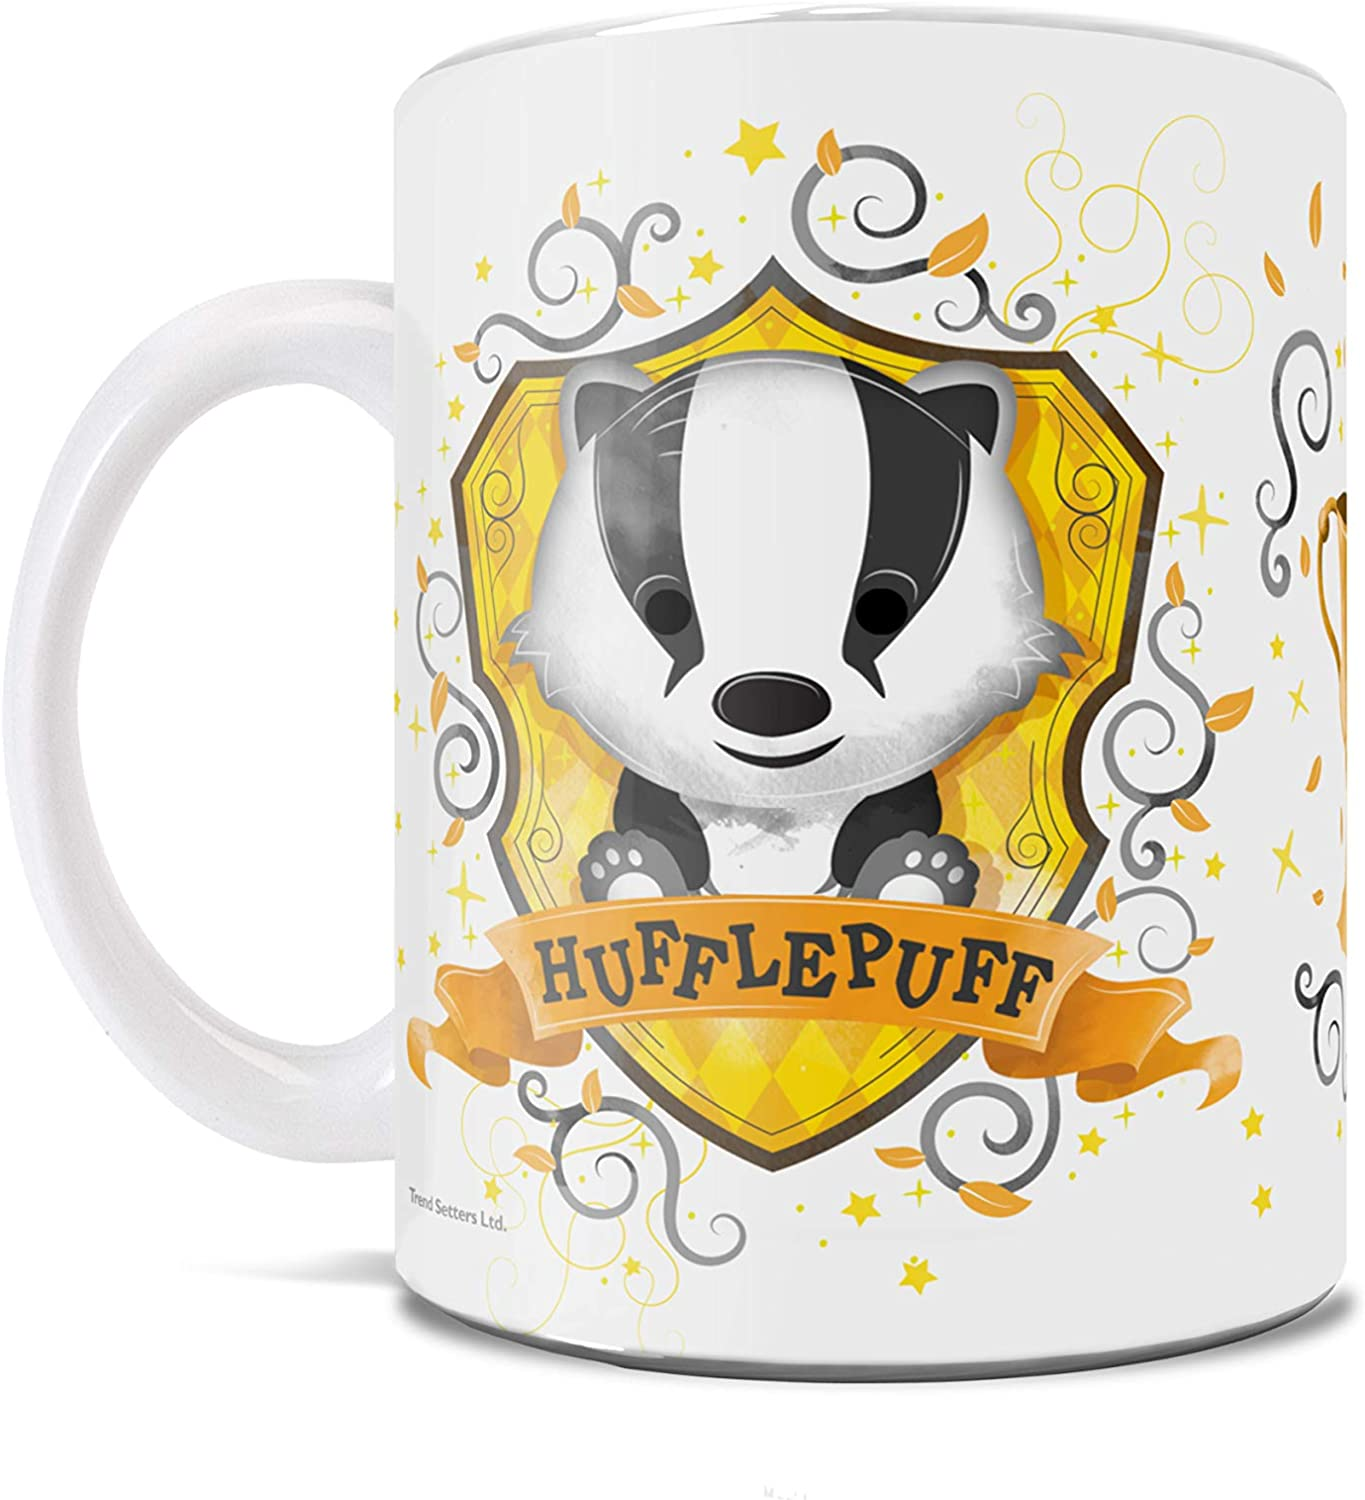 Amazon Com Harry Potter Hufflepuff Hogwarts Chibi Watercolor Cute Geek Mug For Coffee Tea Cocoa Or Gifting Kitchen Dining